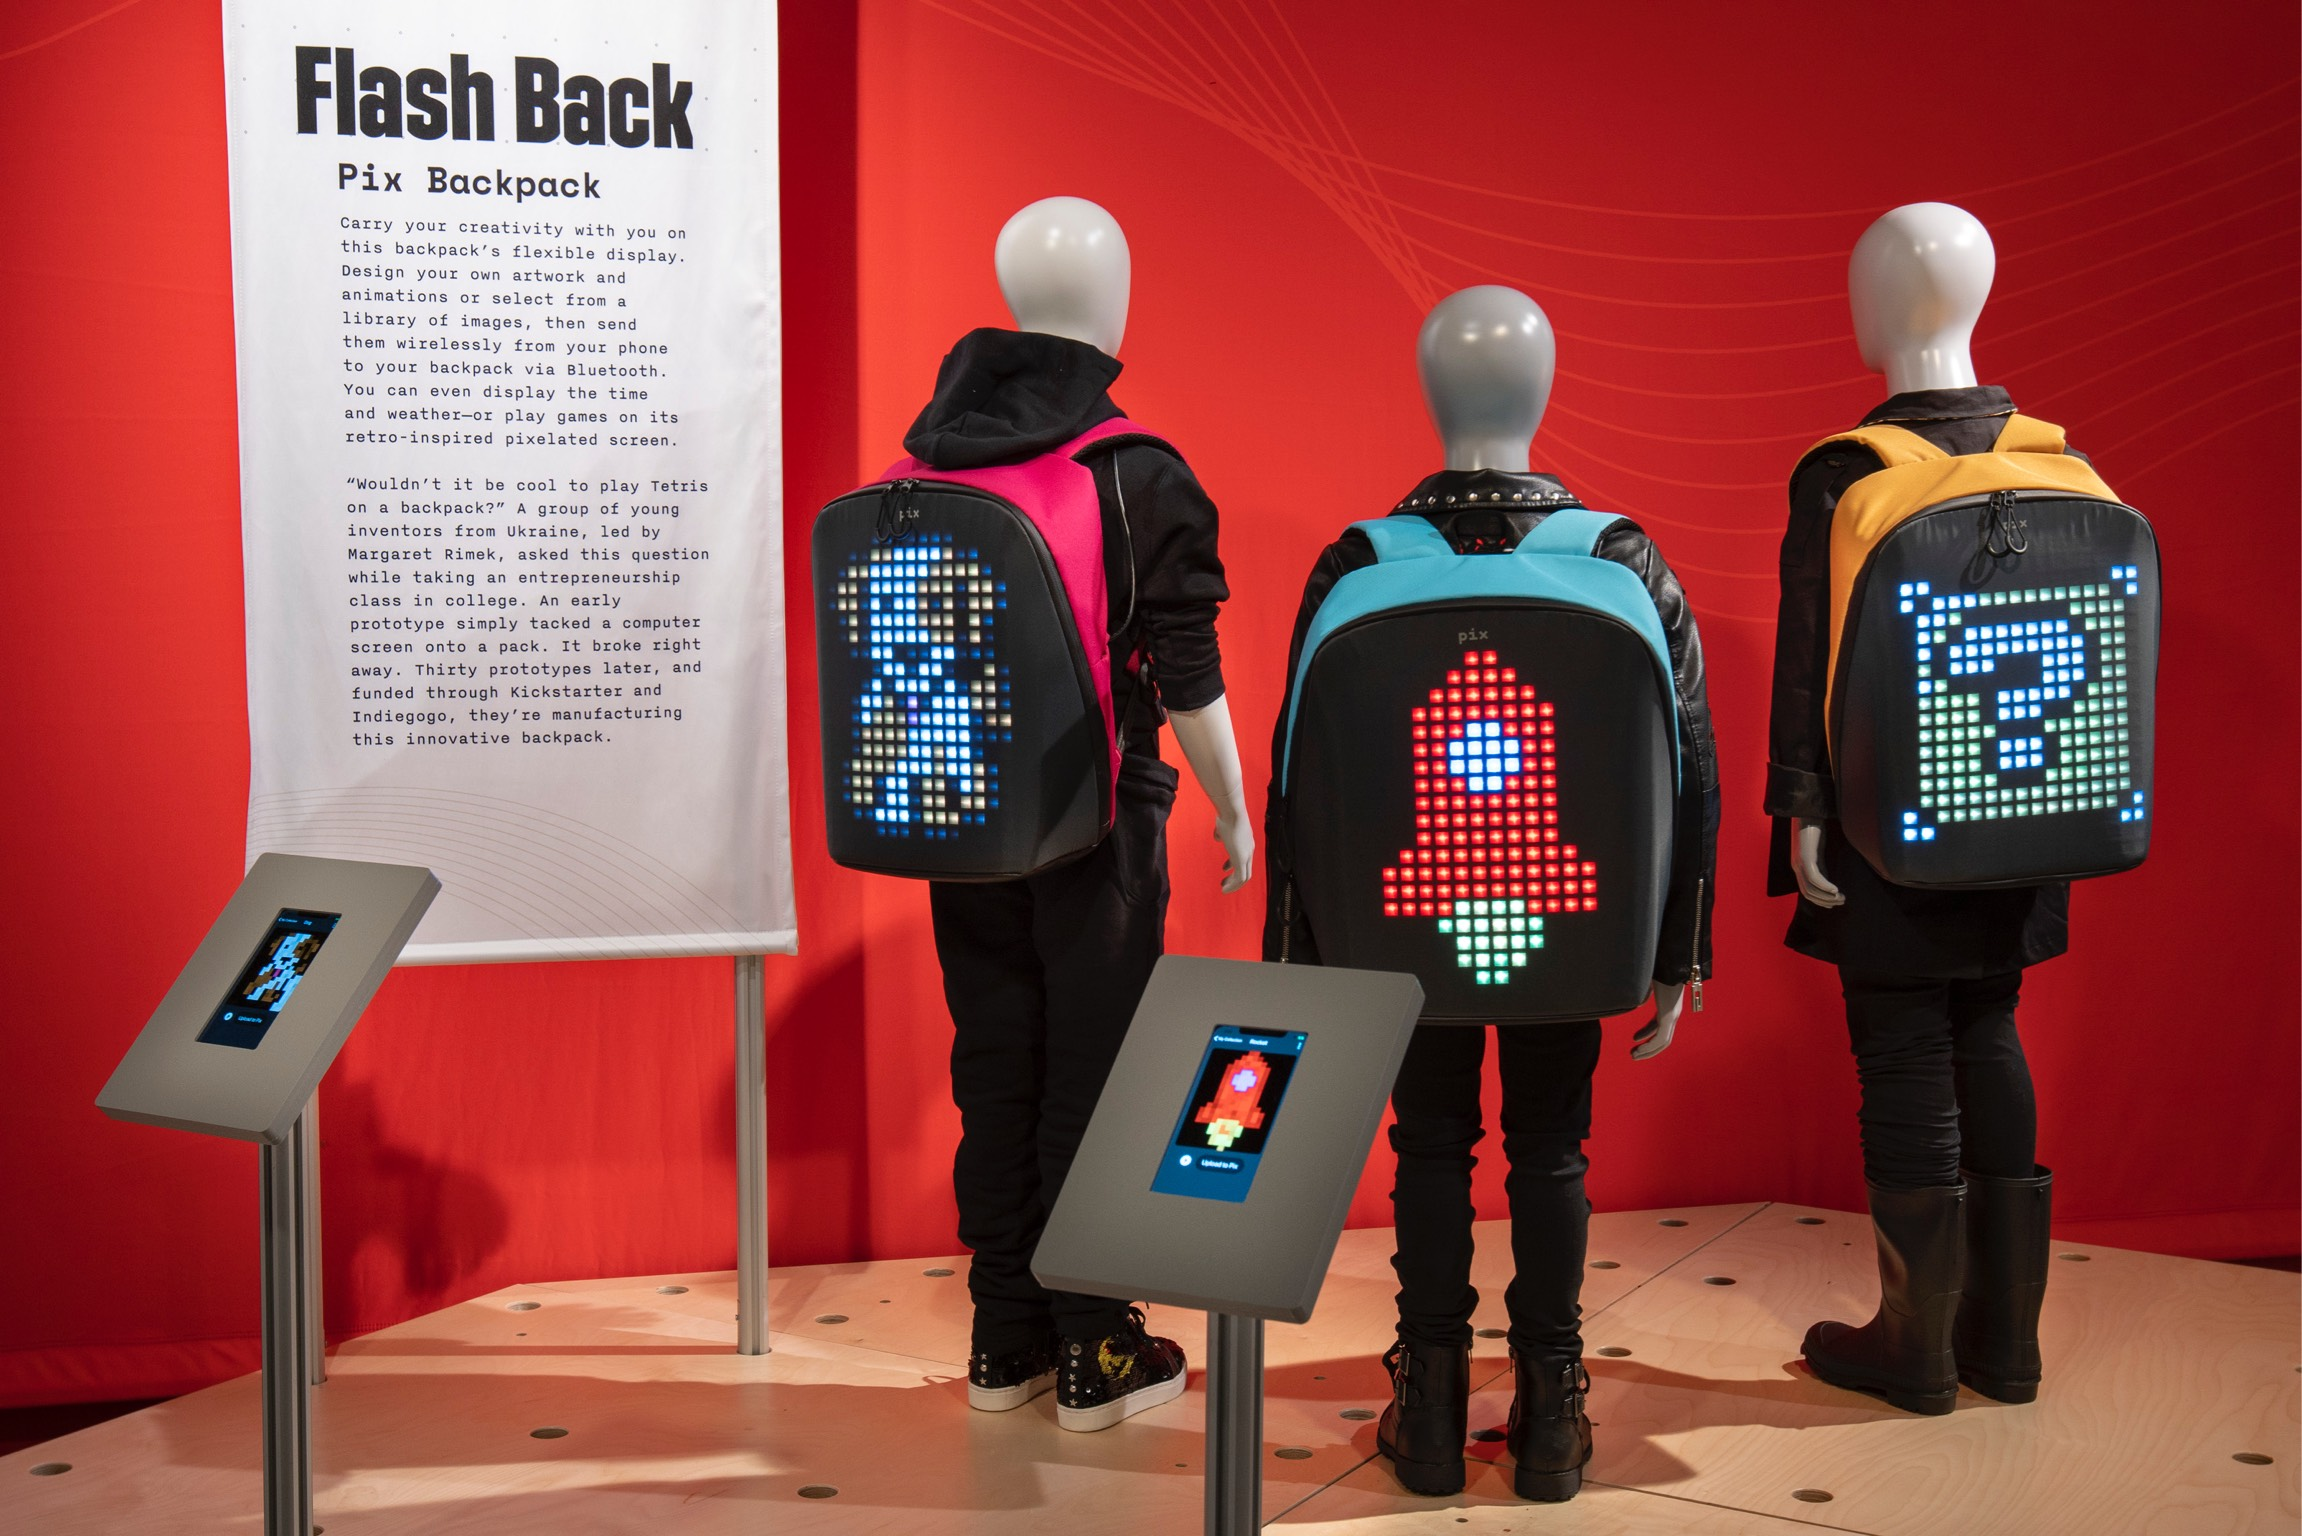 With a PIX backpack, you can send images wirelessly from your phone. (J.B. Spector/Museum of Science and Industry, Chicago)